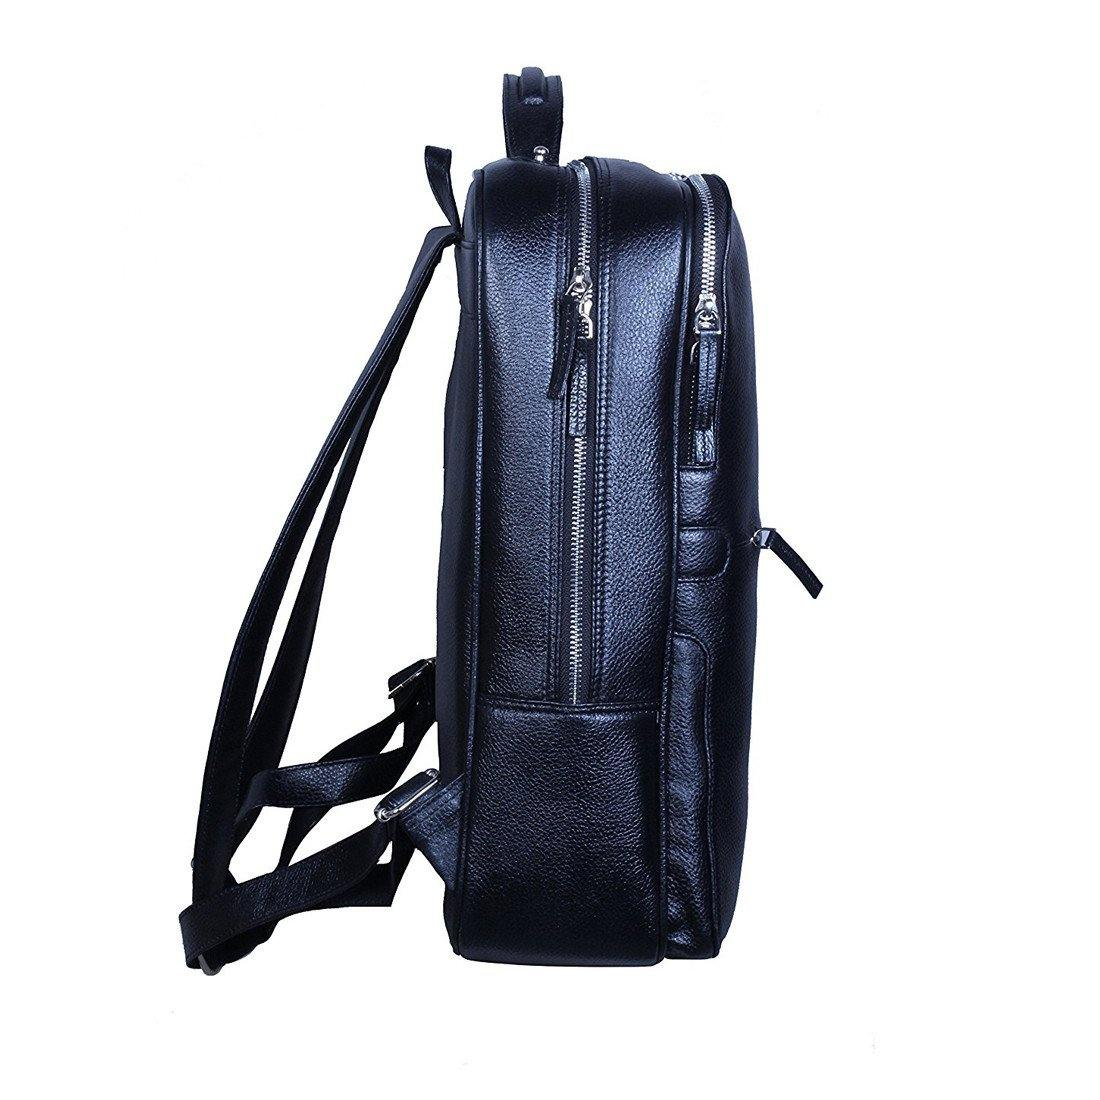 Leather World Unisex Black Genuine Leather Backpack - Leatherworldonline.net